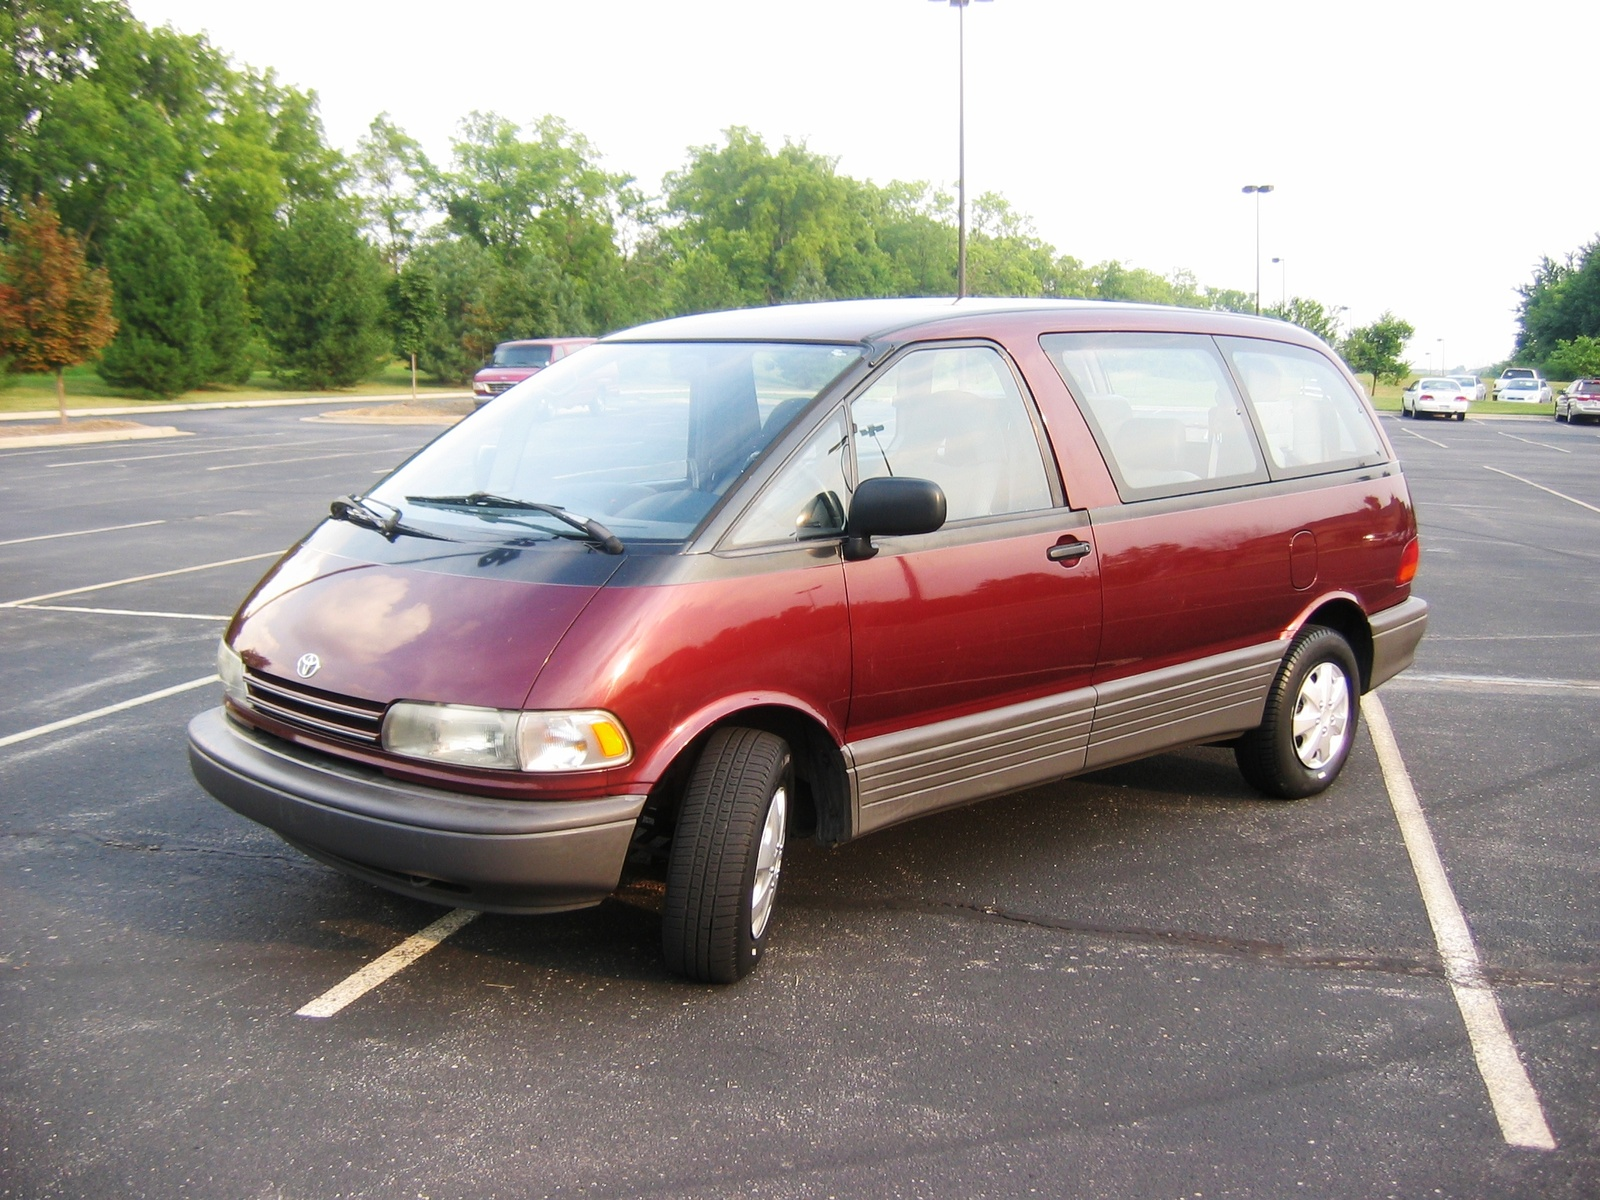 1992 Toyota Previa - Pictures